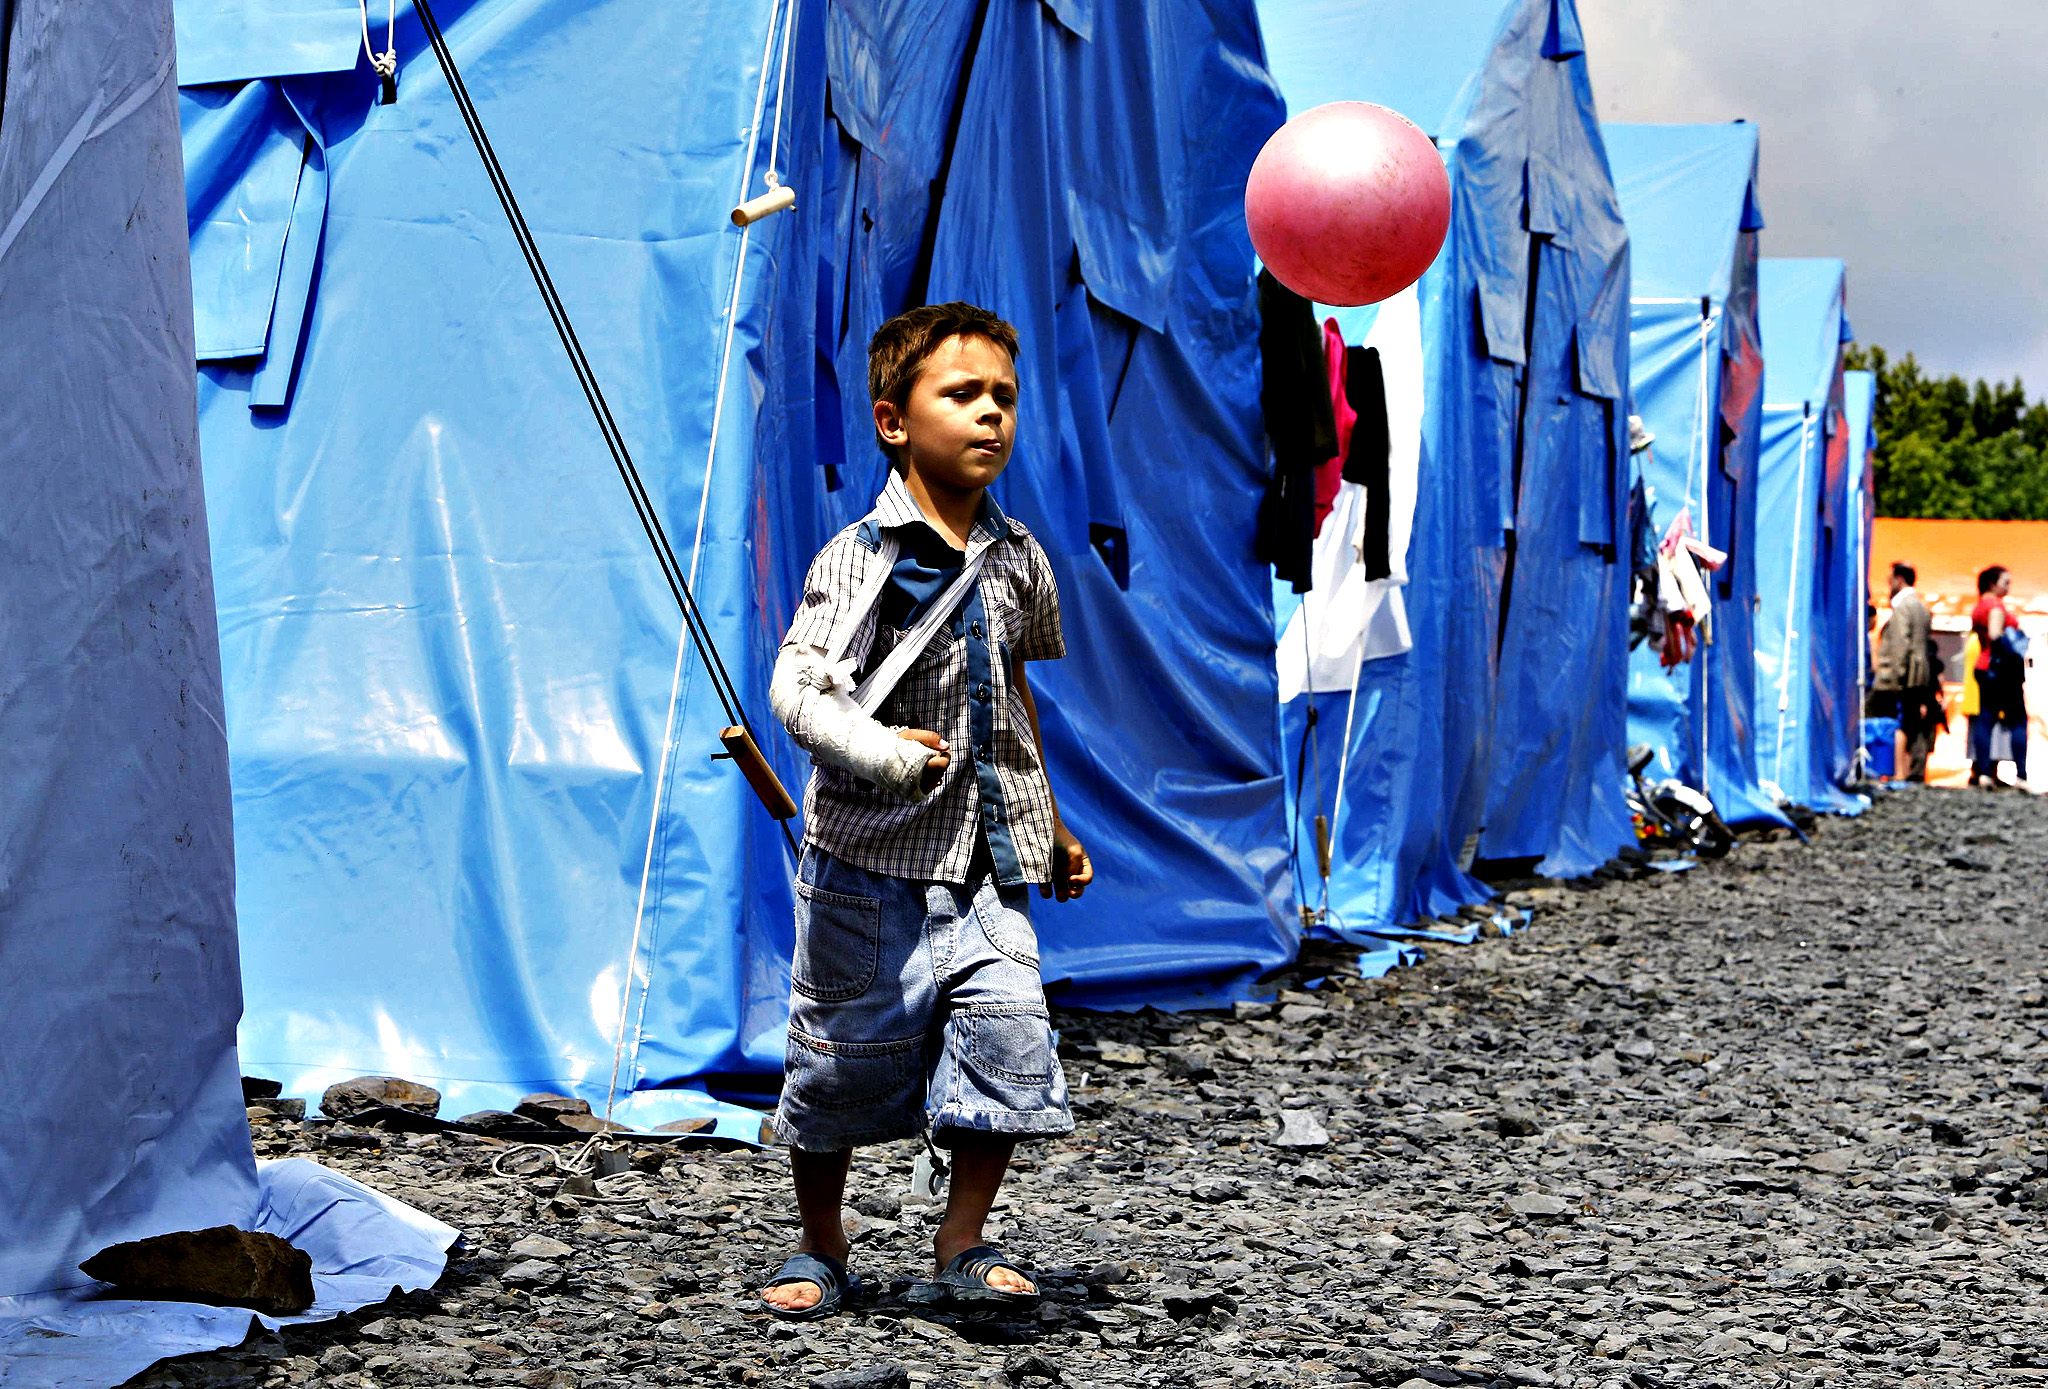 A boy plays with a ball at a temporary tent camp set up for Ukrainian refugees in the town of Novoshakhtinsk in Rostov region near the Russian-Ukrainian border, southern Russia, July 9, 2014.